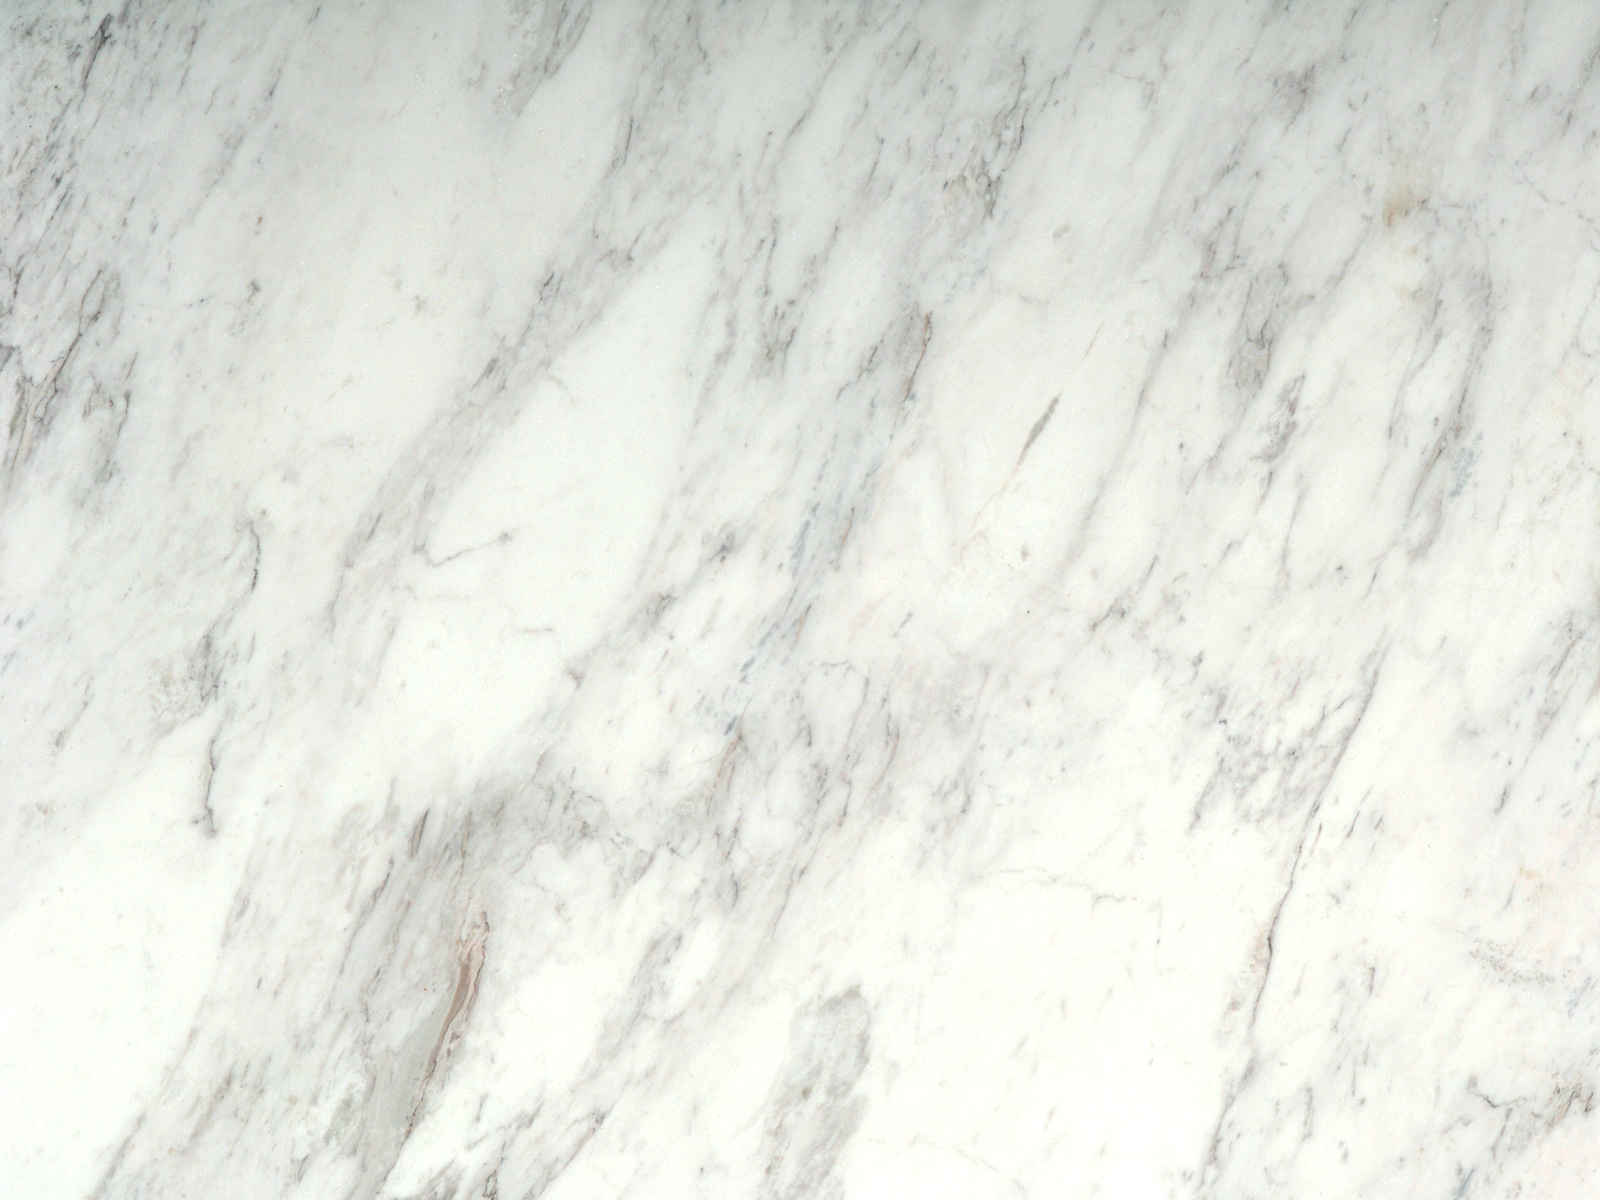 Callacatta Supreme Honed Omicron Granite Tile